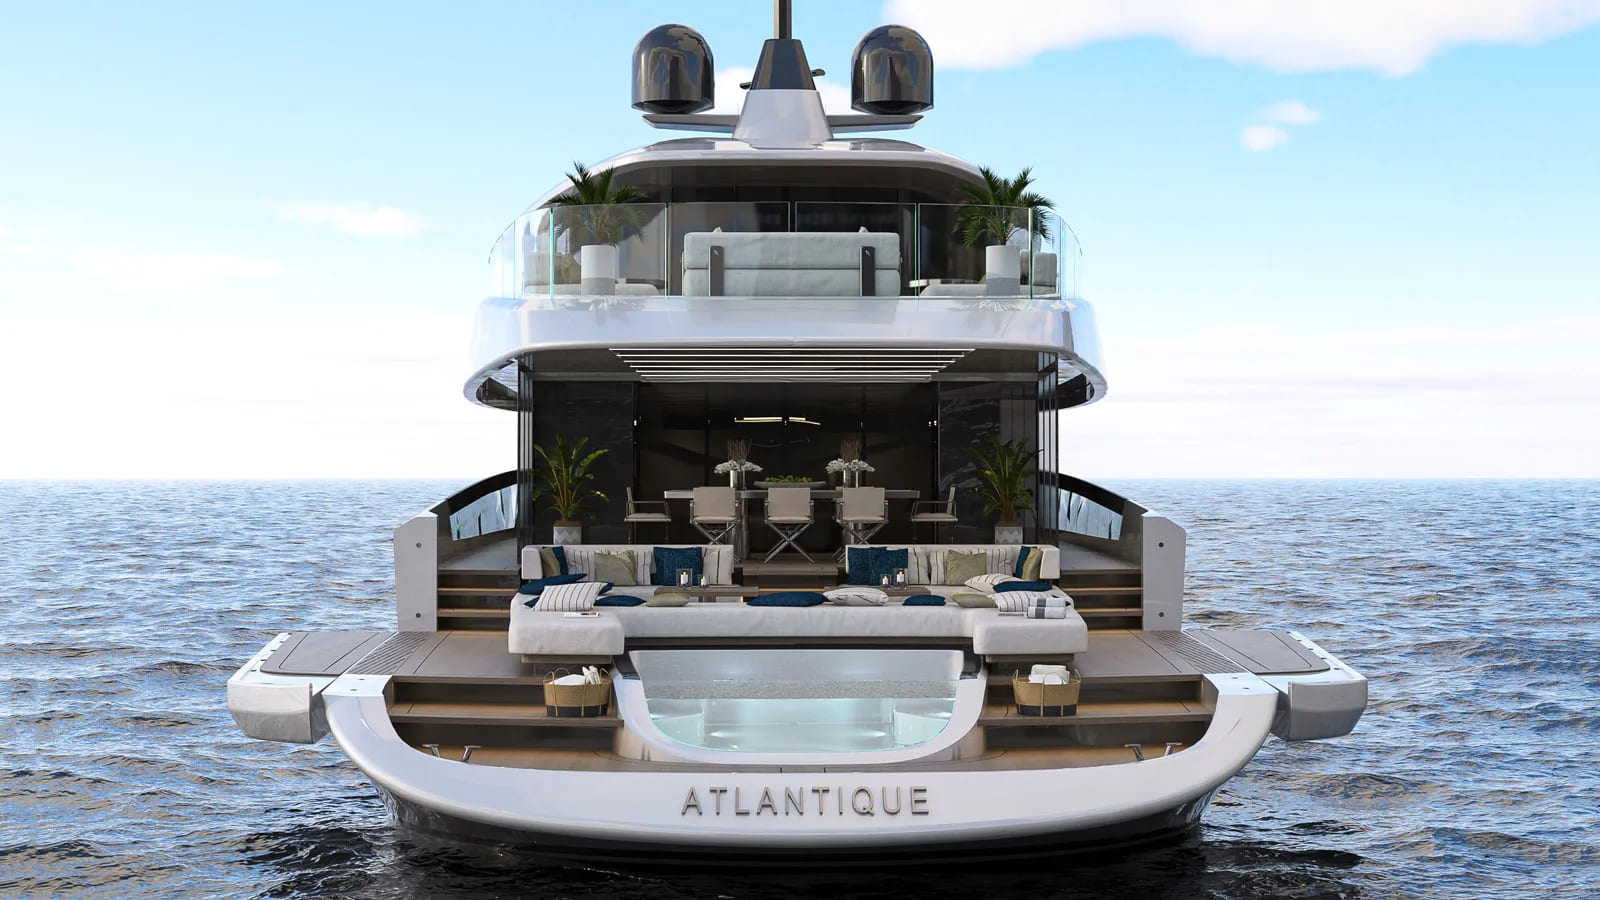 Columbus Yachts Atlantique superiate - boat shopping